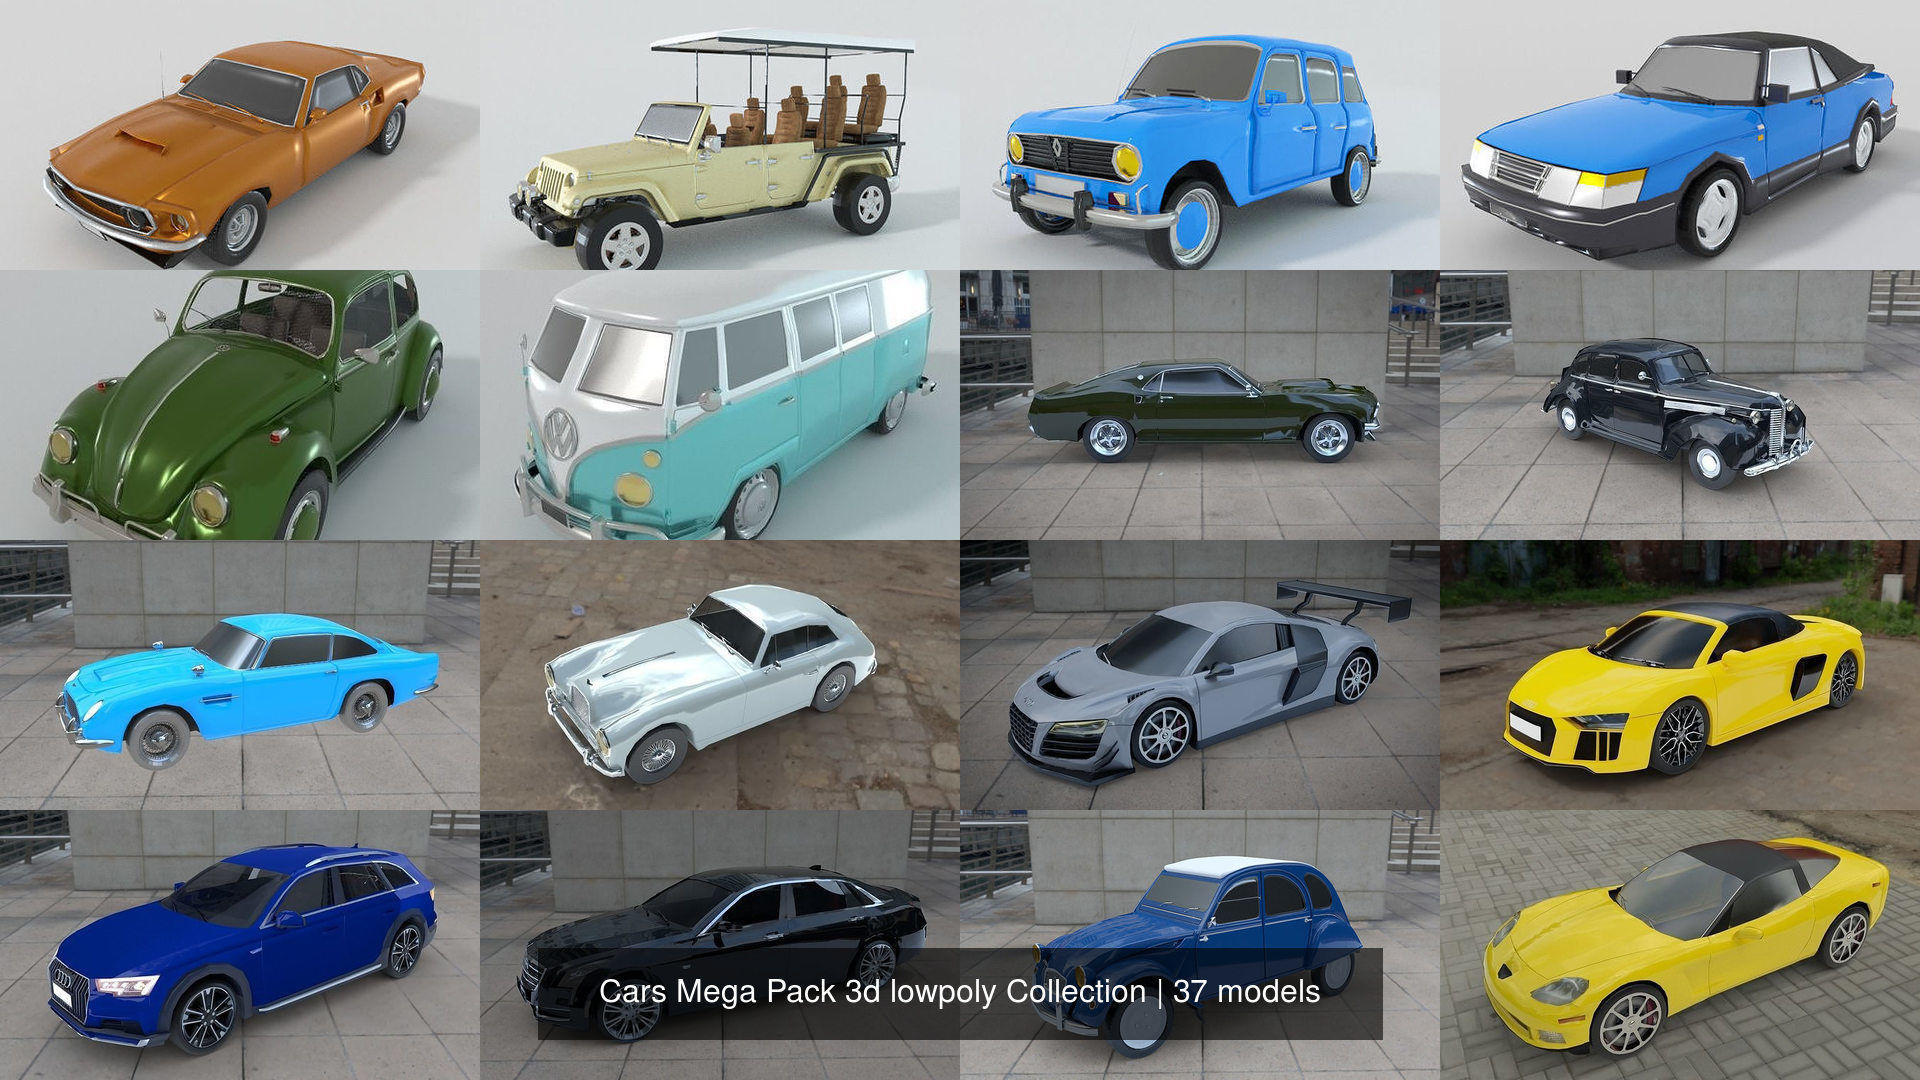 37 Cars Mega Pack 3d lowpoly Collection